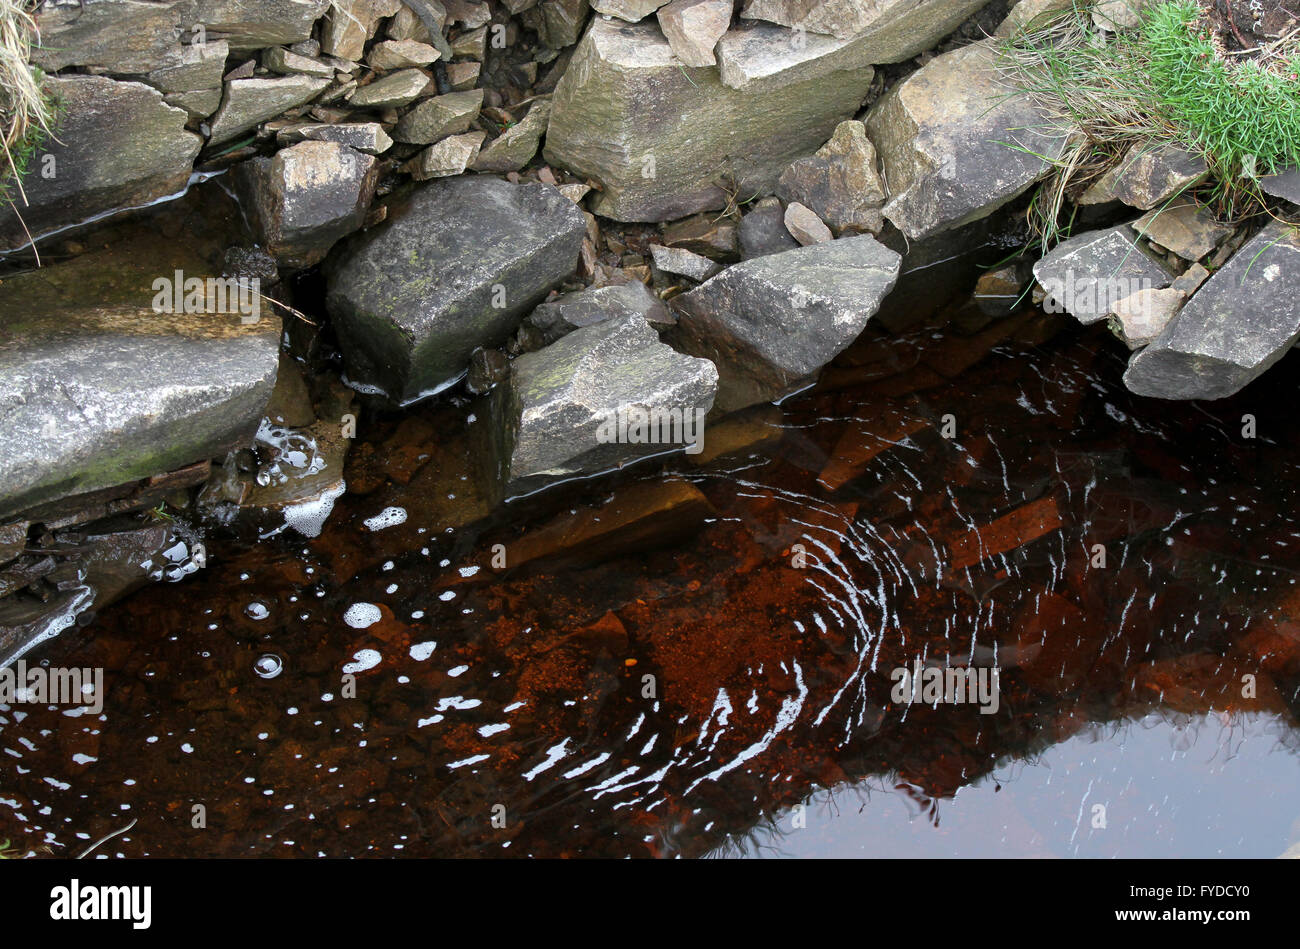 A bank of stones on the edge of a small pool of peat-coloured water on a freshwater stream on the island of Arranmore, Stock Photo